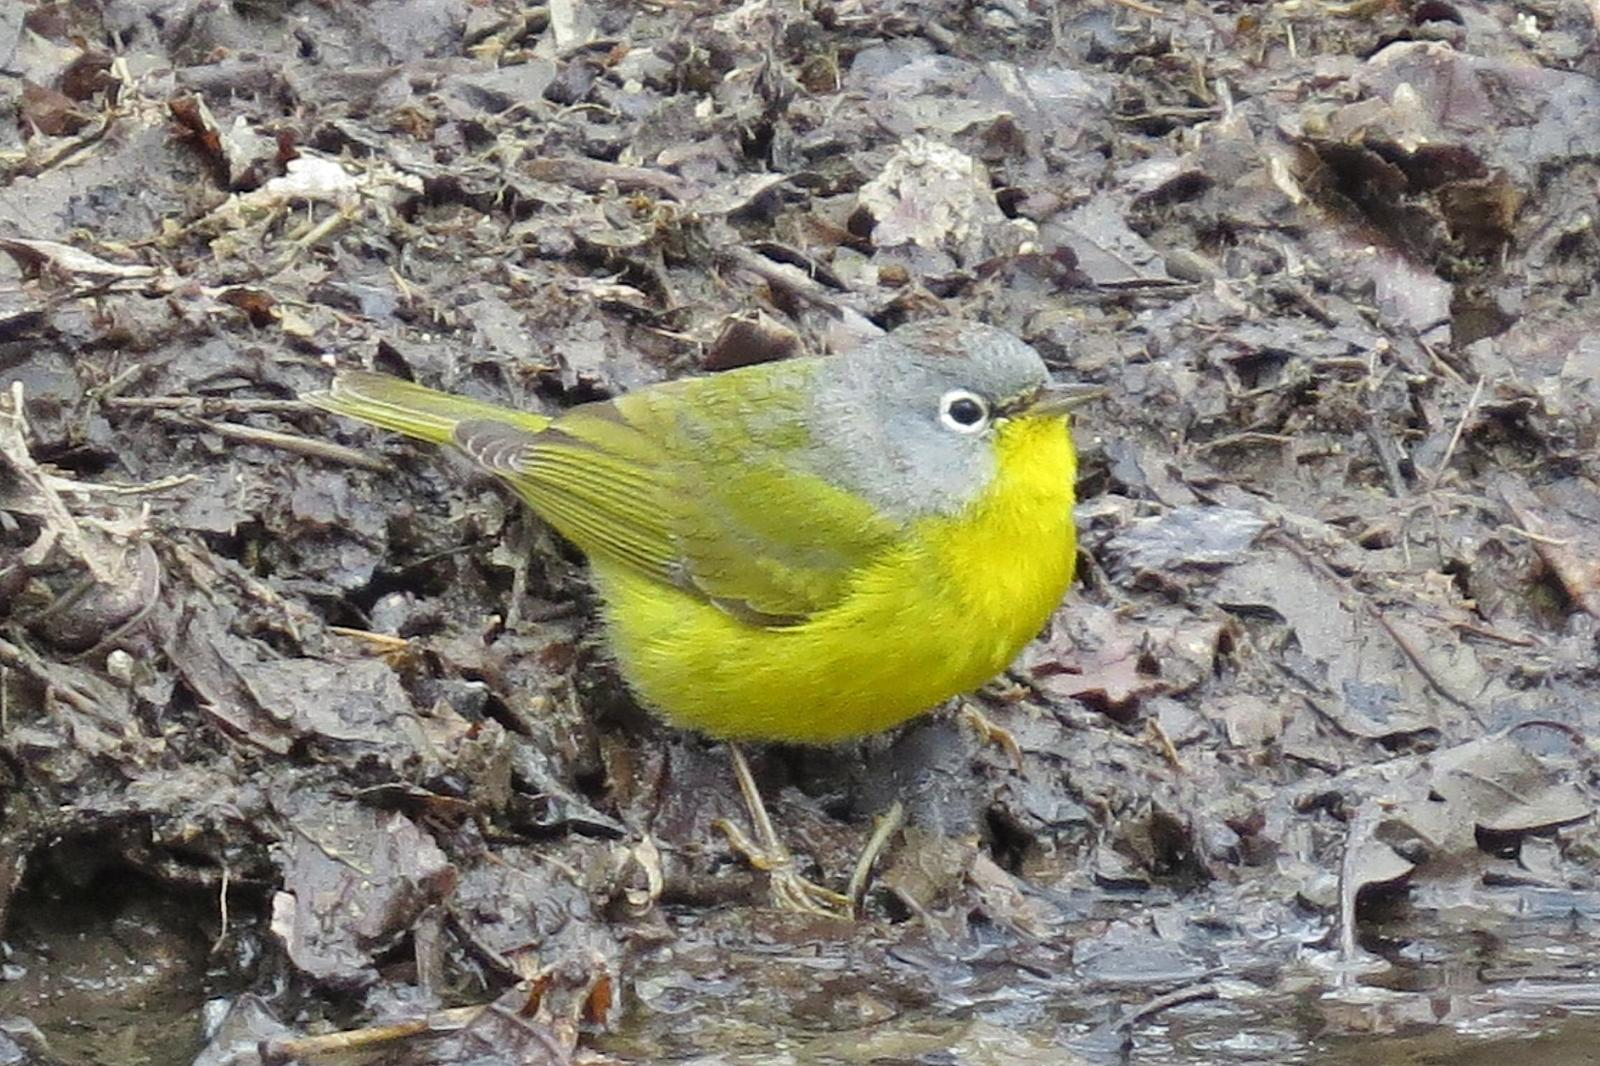 Nashville Warbler Photo by Enid Bachman